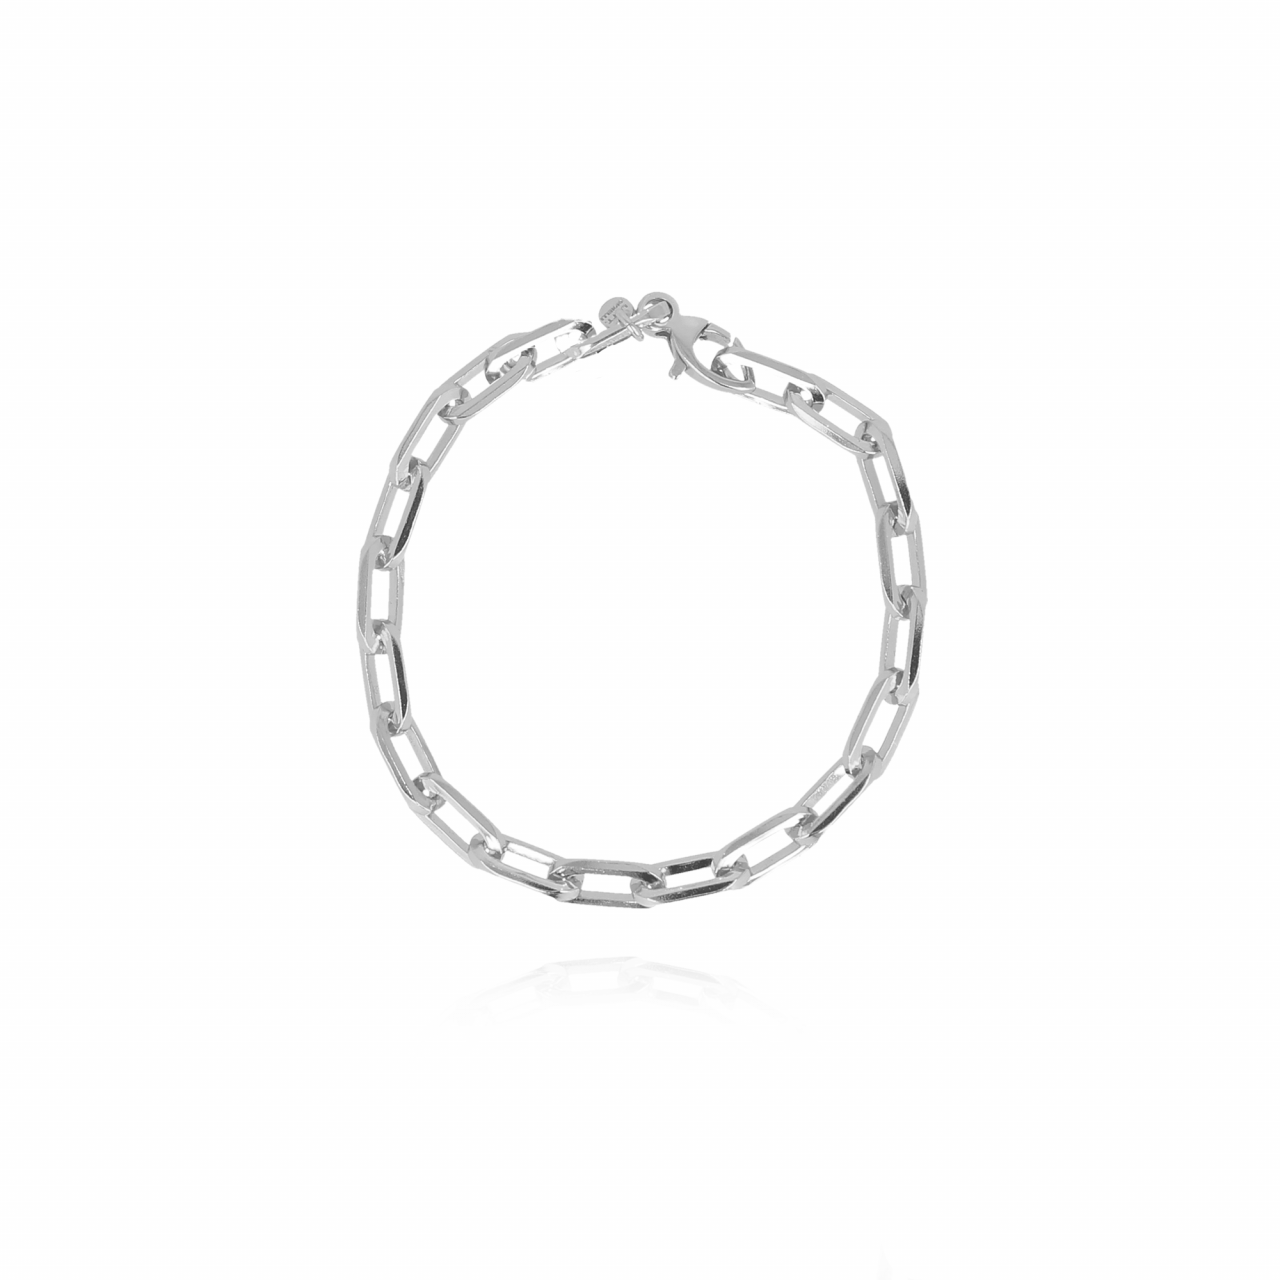 Bracelet collier closed forever S en argent